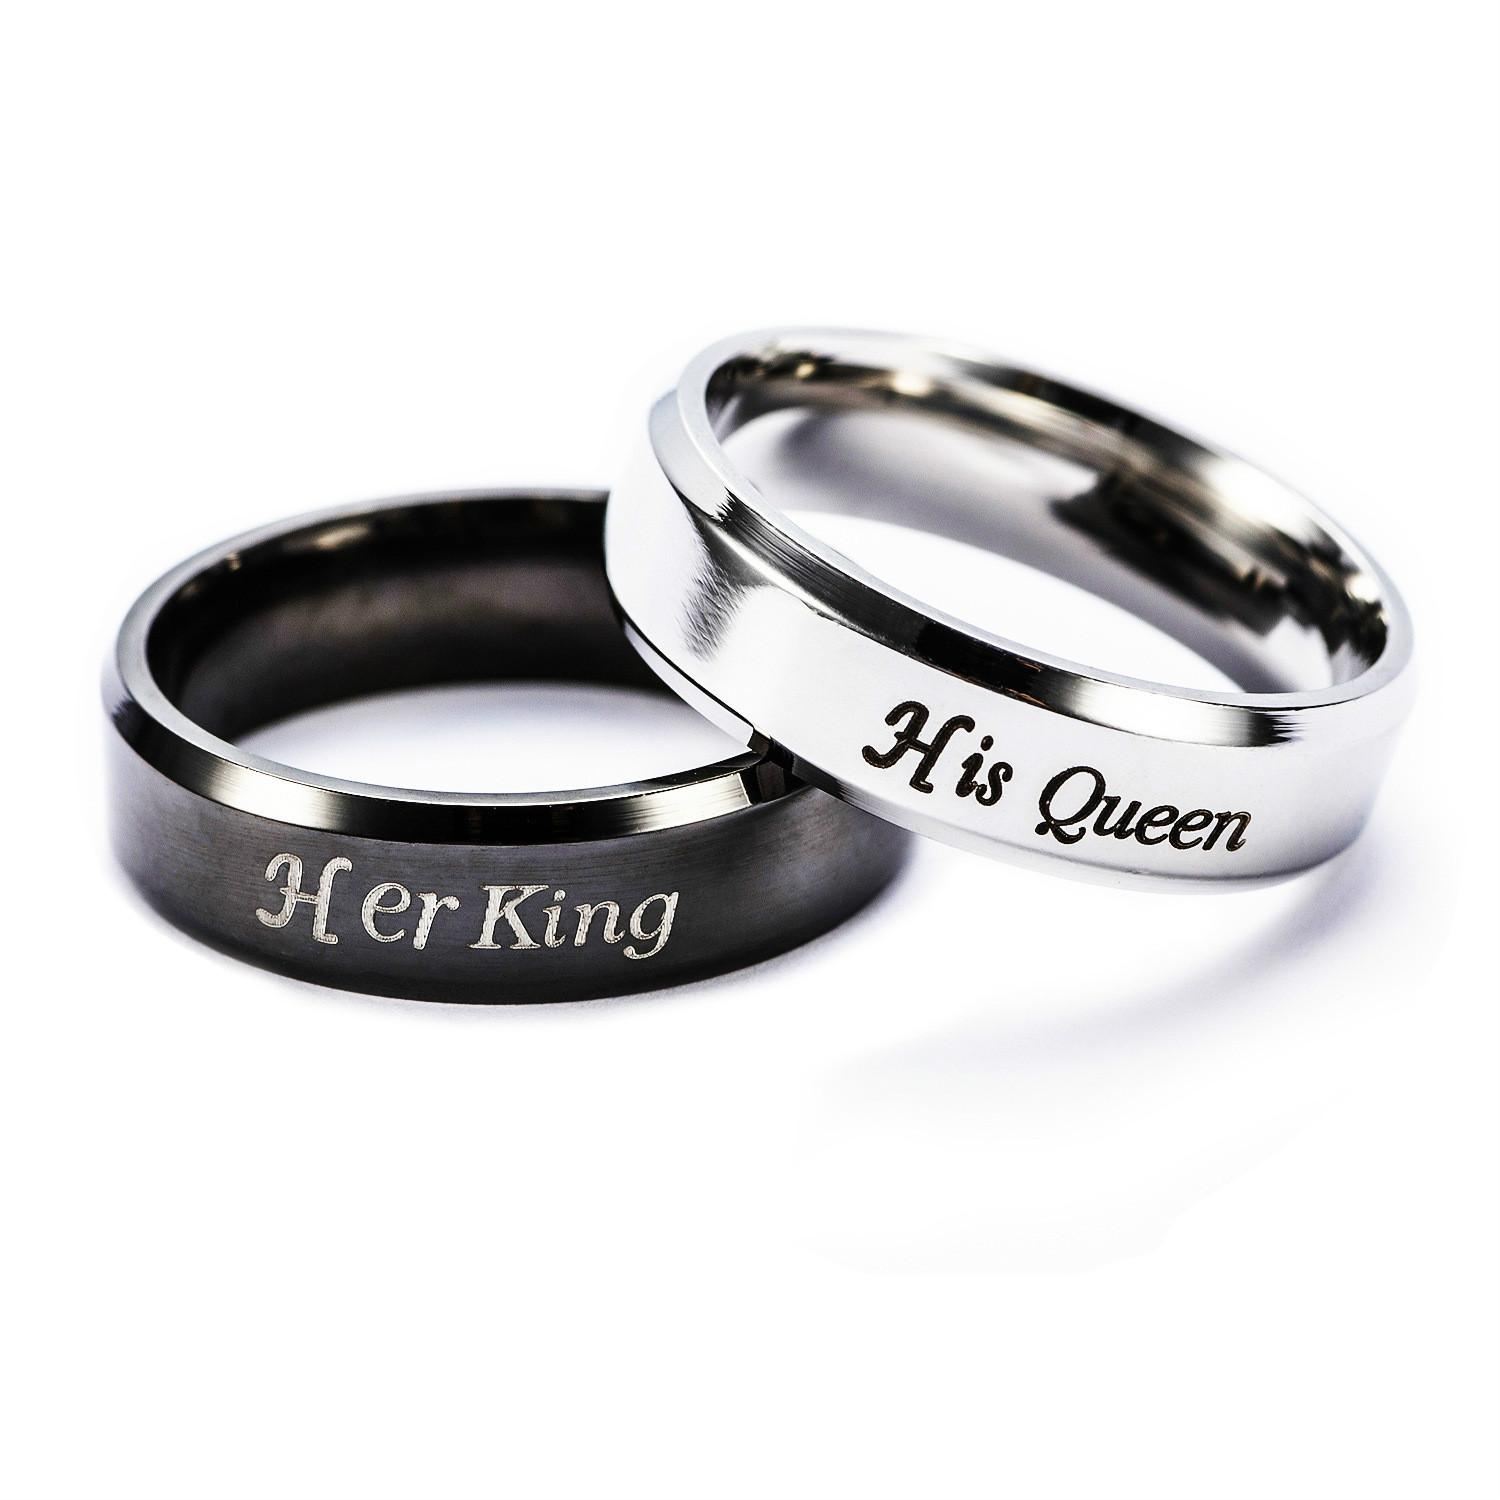 bands ring design rings fort irish of celtic titanium tungsten to silver mens for men elegant carbide idea pertaining black gold wedding fit image band inspirational